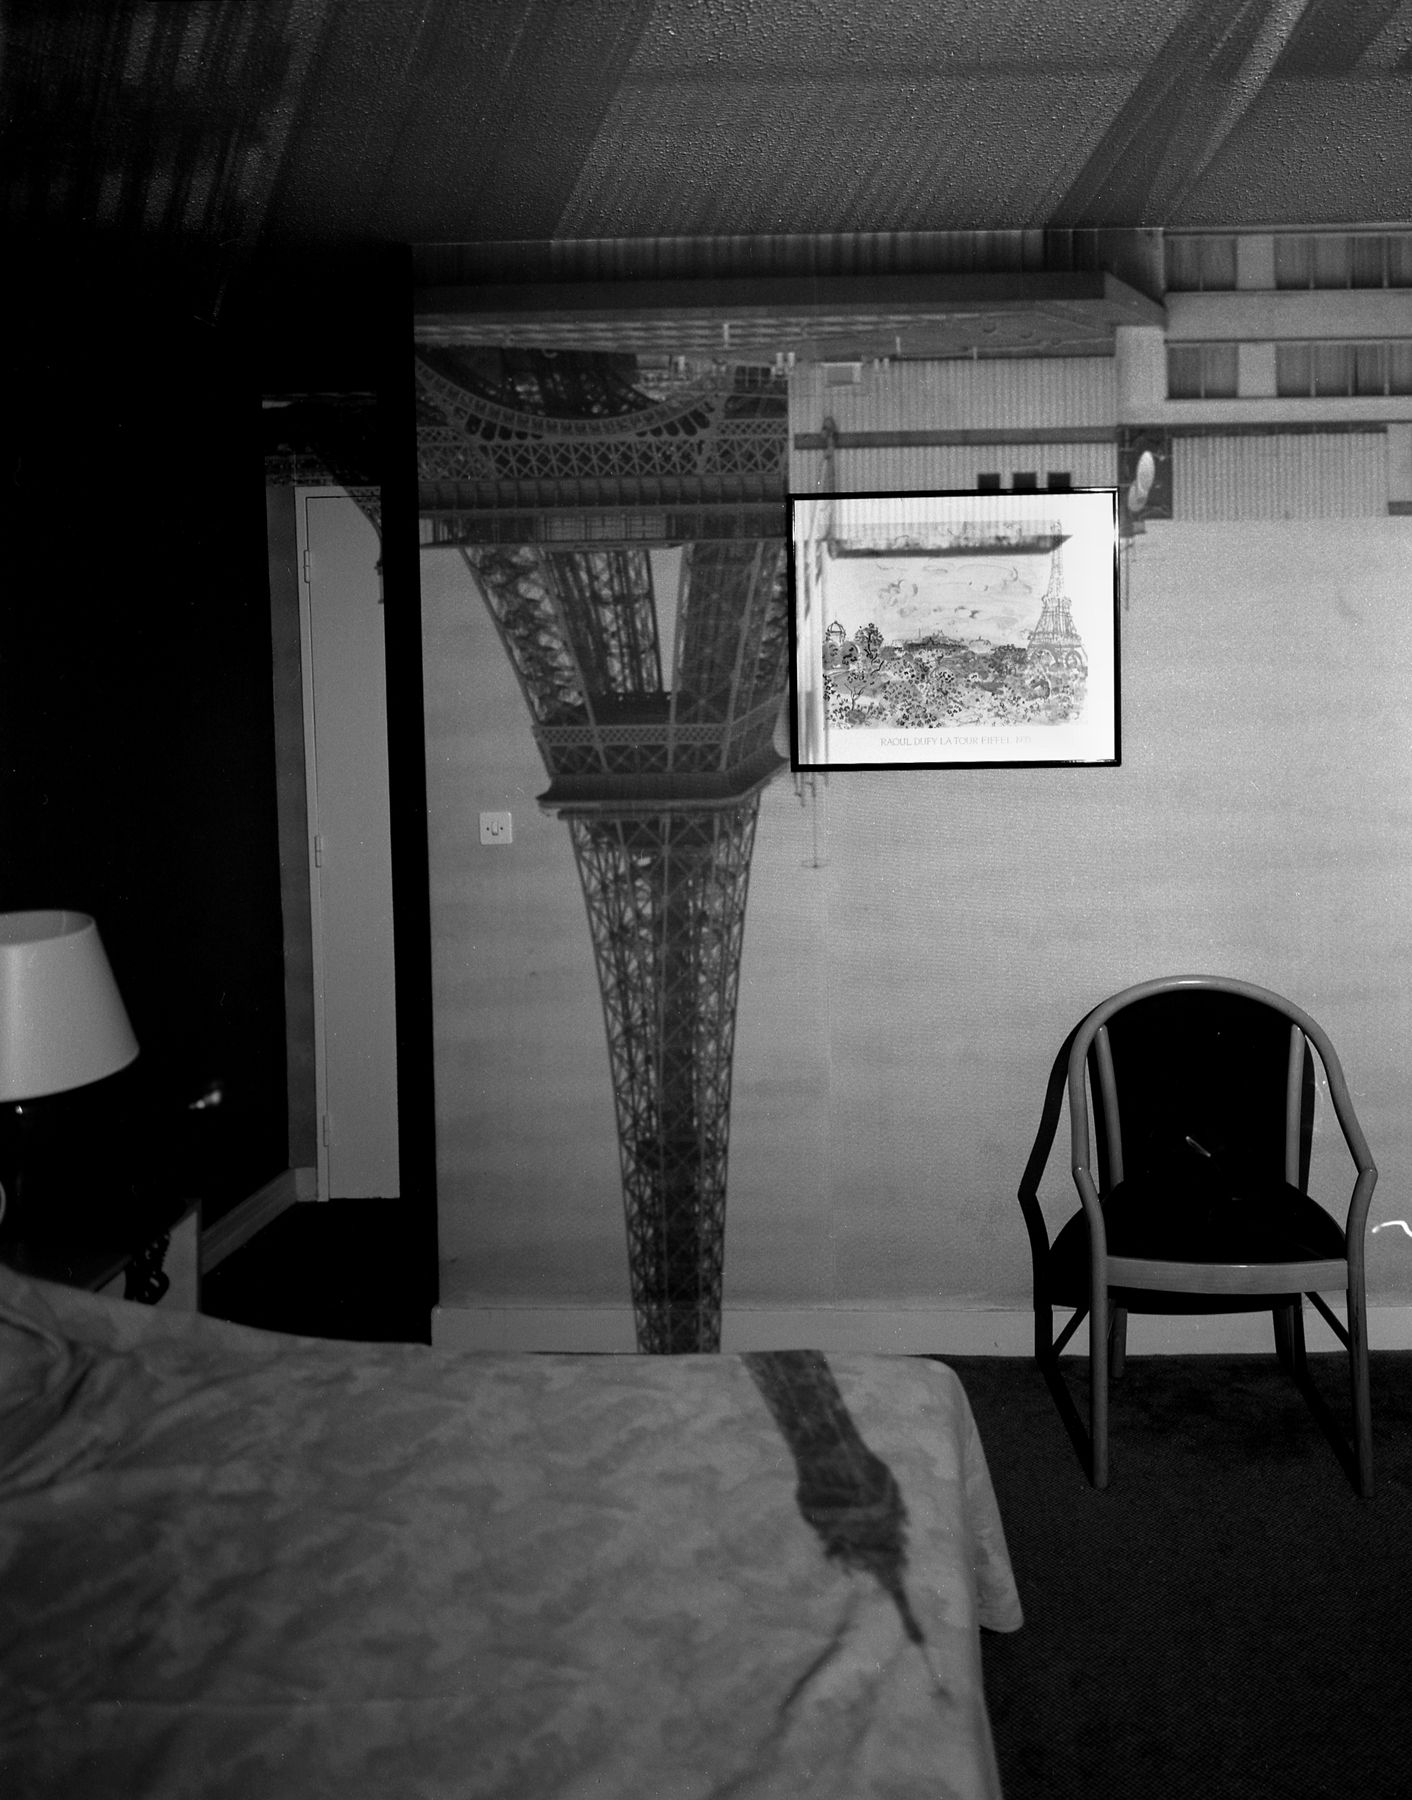 Abelardo Morell, Camera Obscura: Image of the Eiffel Tower in the Hotel Frantour, 1999